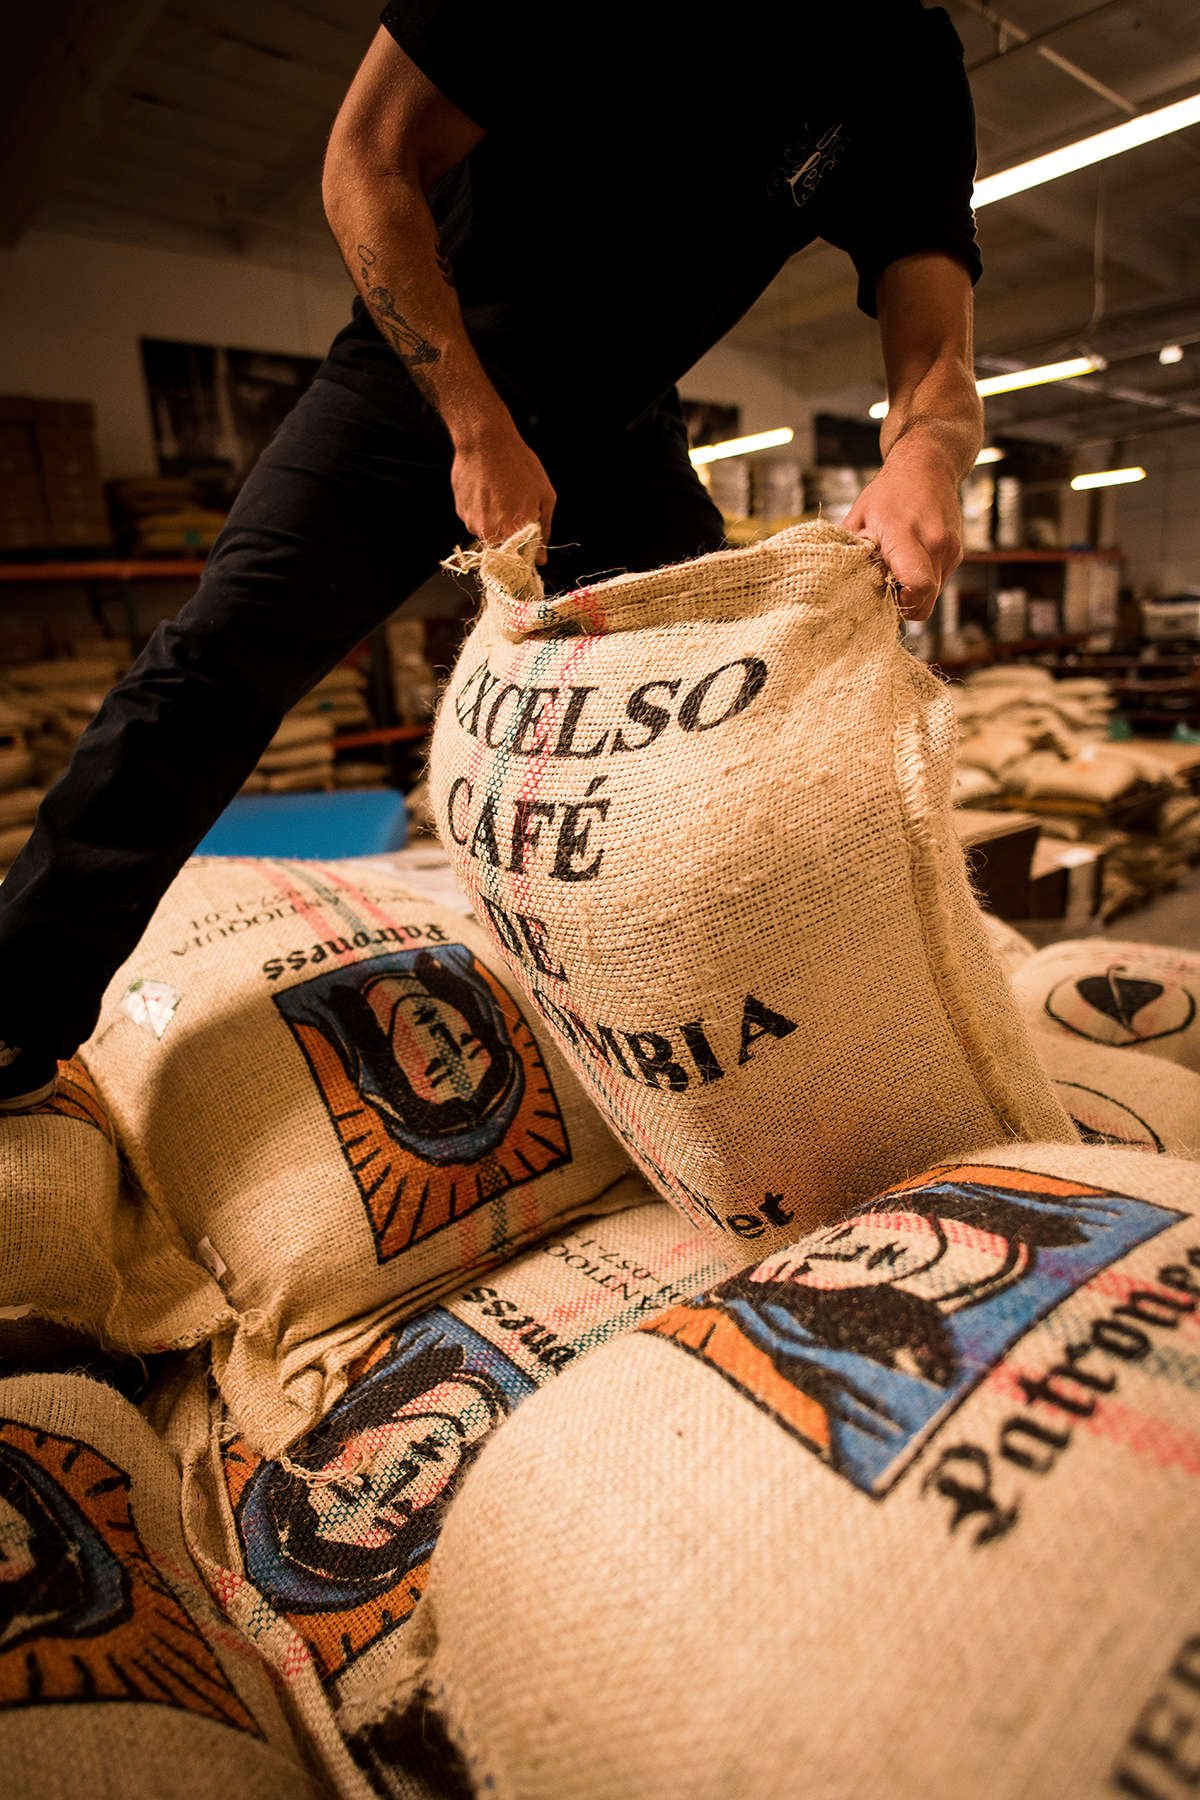 Warhouse Worker Moving Coffee Bags